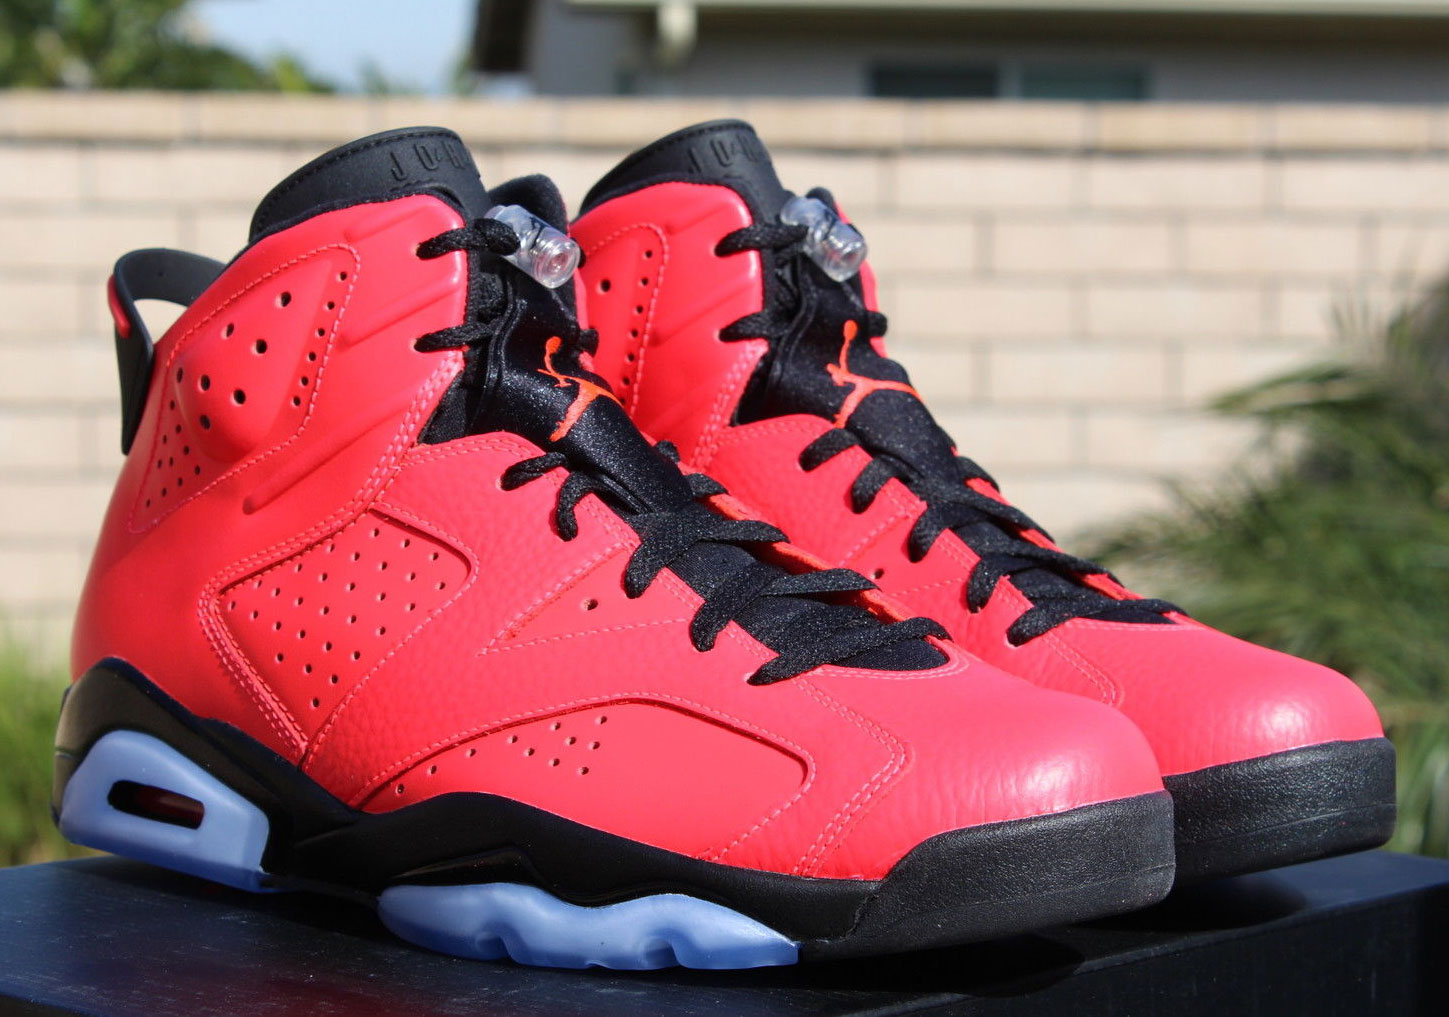 air jordan 6 infrared 23 release reminder air. Black Bedroom Furniture Sets. Home Design Ideas